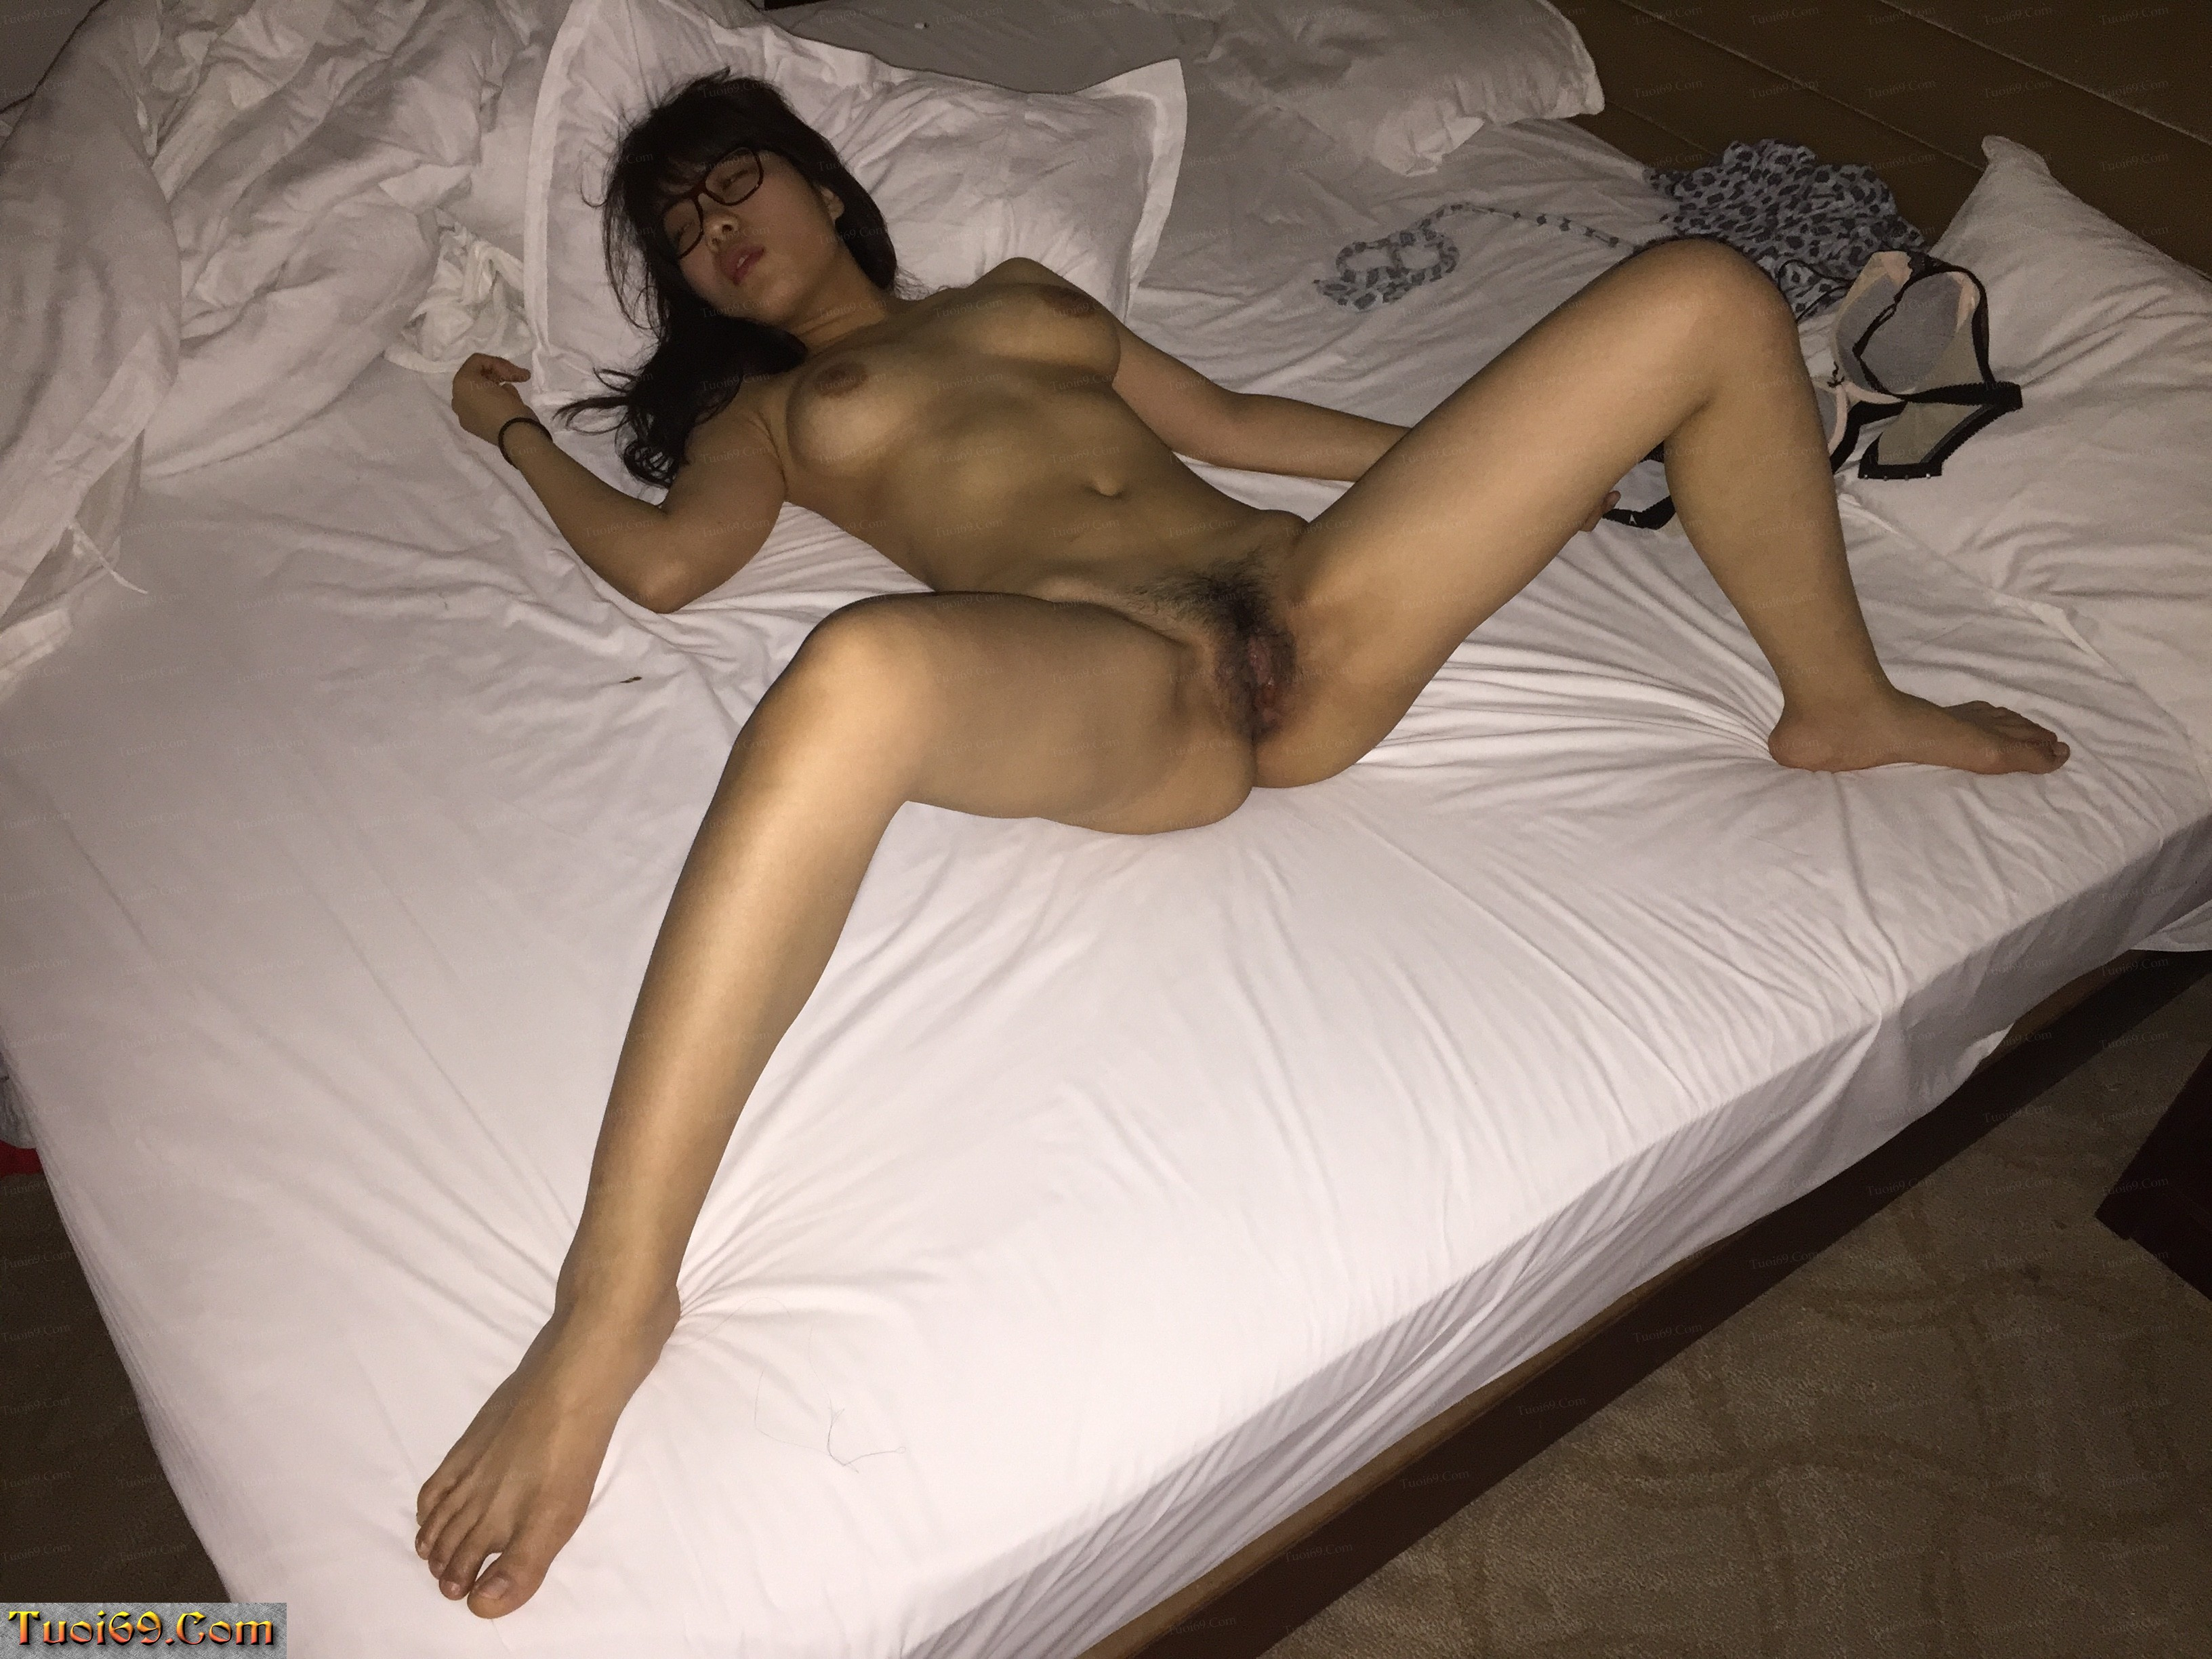 Asian_Teen_Schoolgirl_Fucked_While_Sleeping_80